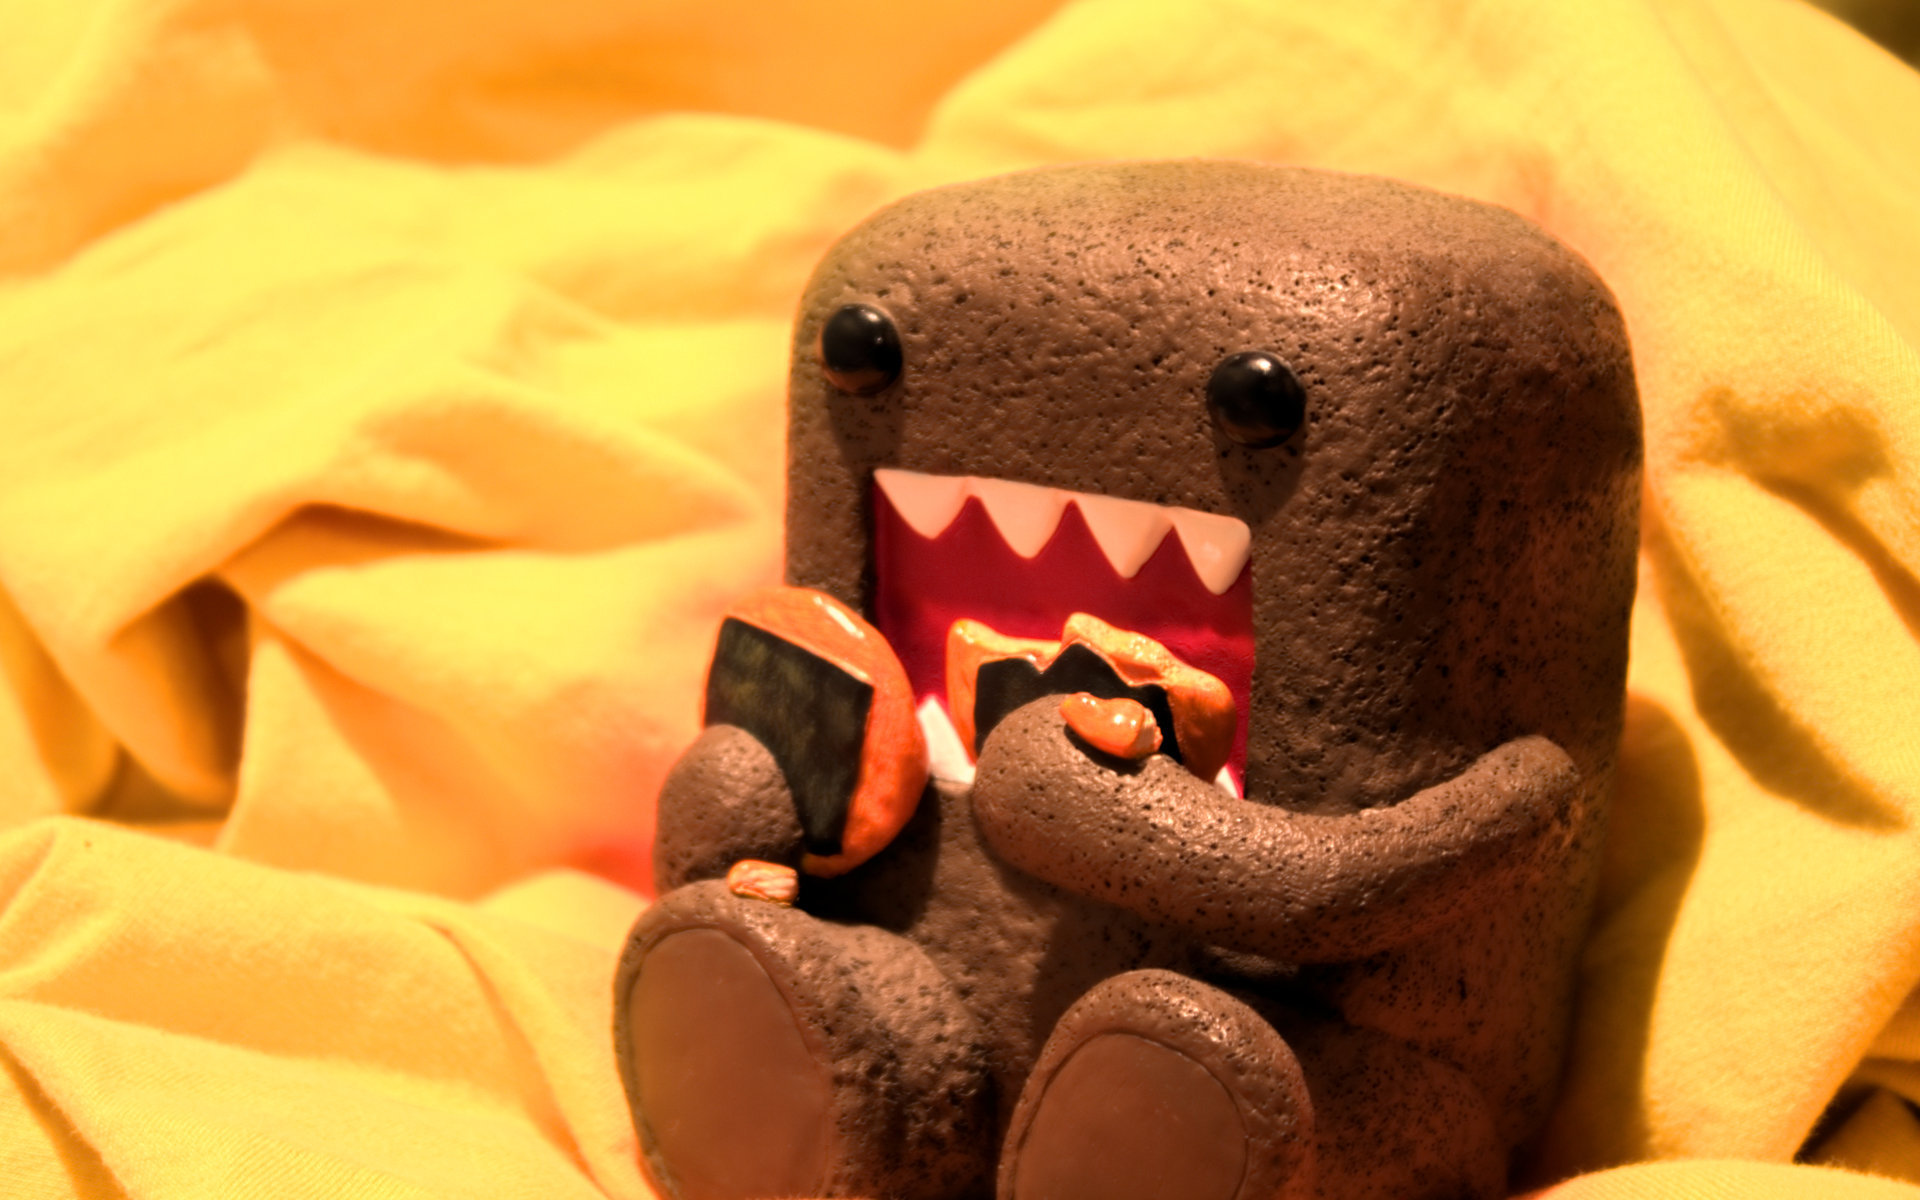 Domo Wallpaper Hd 19201200 24814 HD Wallpaper Res 1920x1200 1920x1200